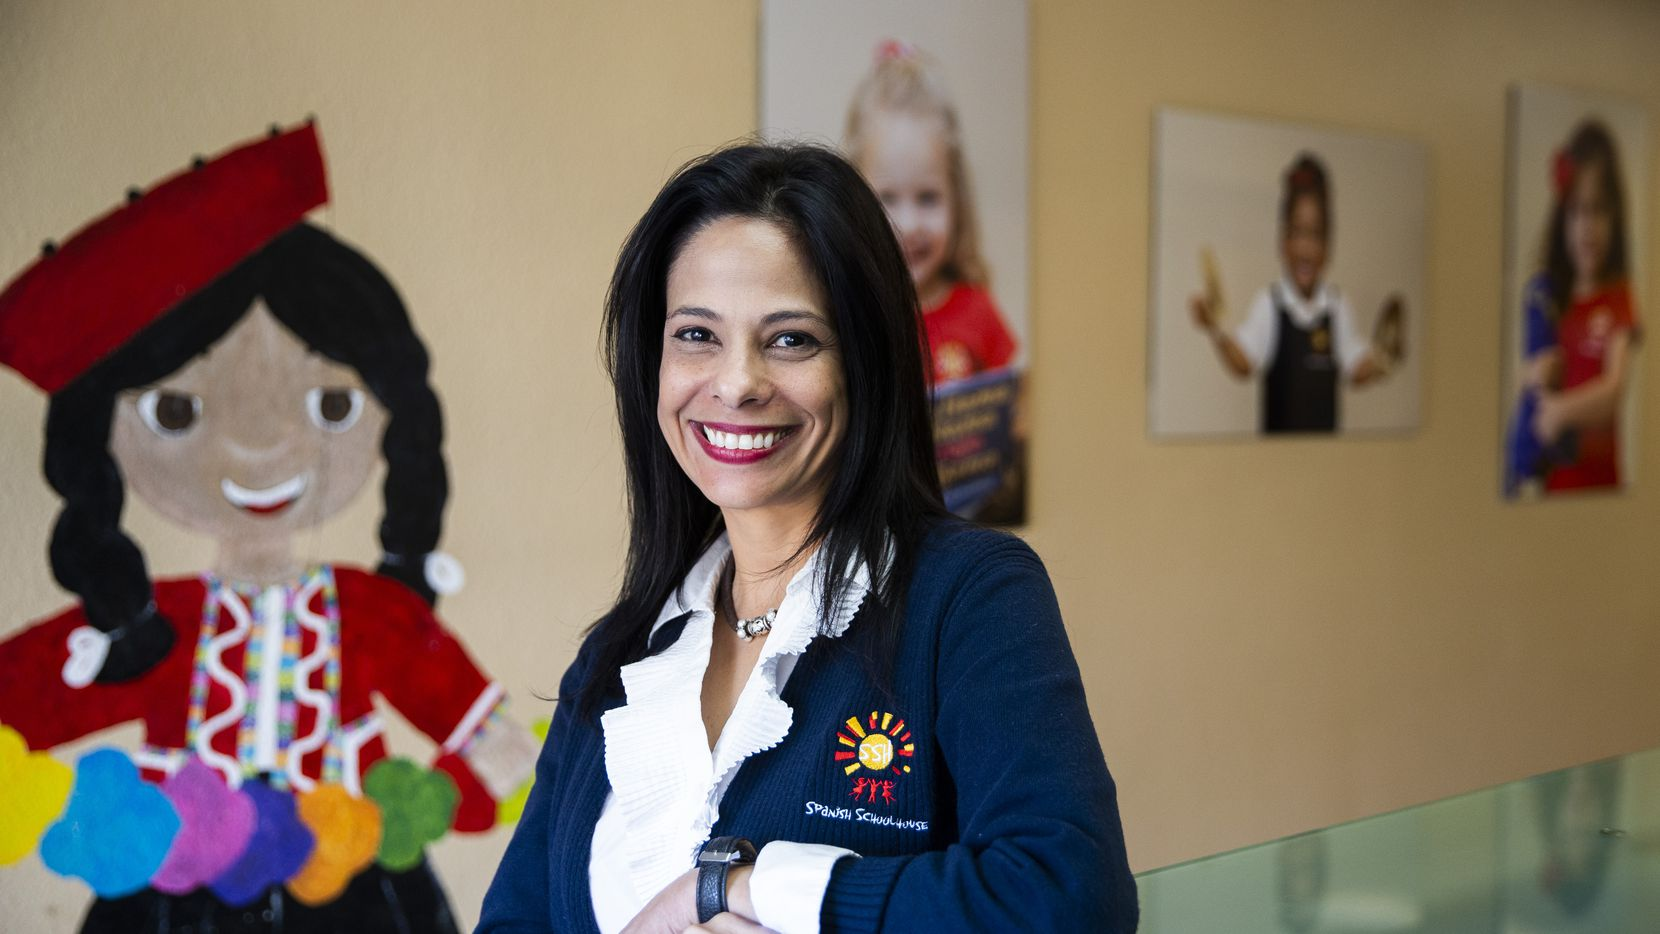 Director Jennifer Granadillo poses for a portrait on Monday, November 18, 2019 at Spanish Schoolhouse in Coppell. She is among several Venezuelan teachers at the Spanish-speaking preschool.